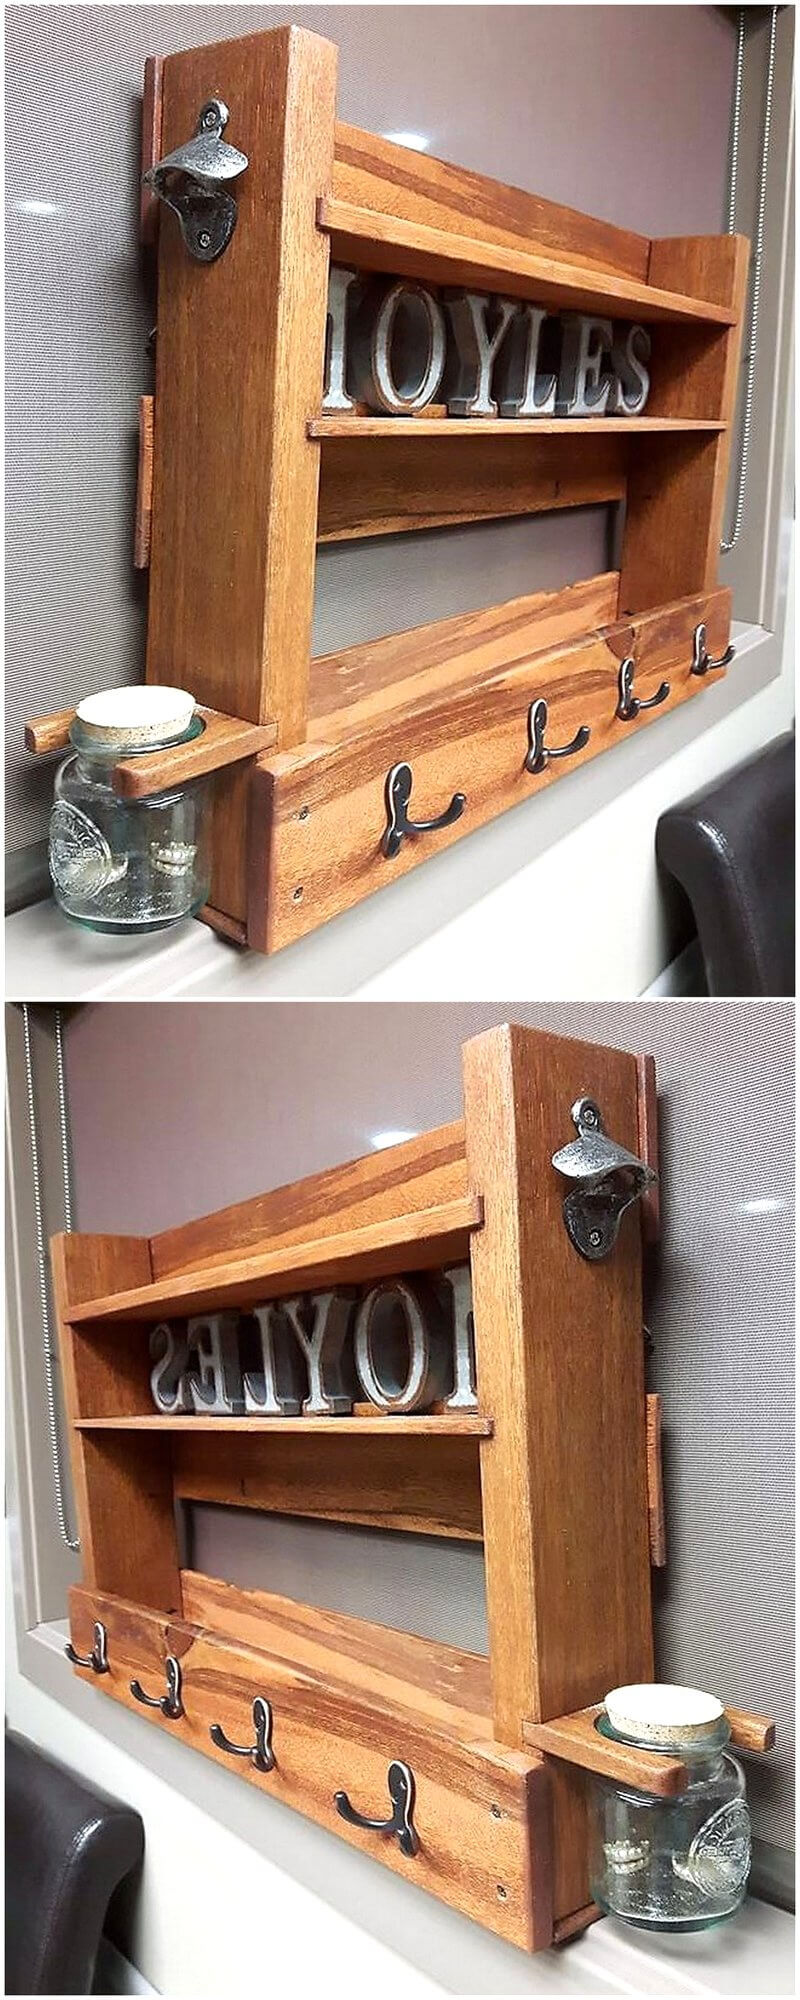 upcycled wood pallet shelf